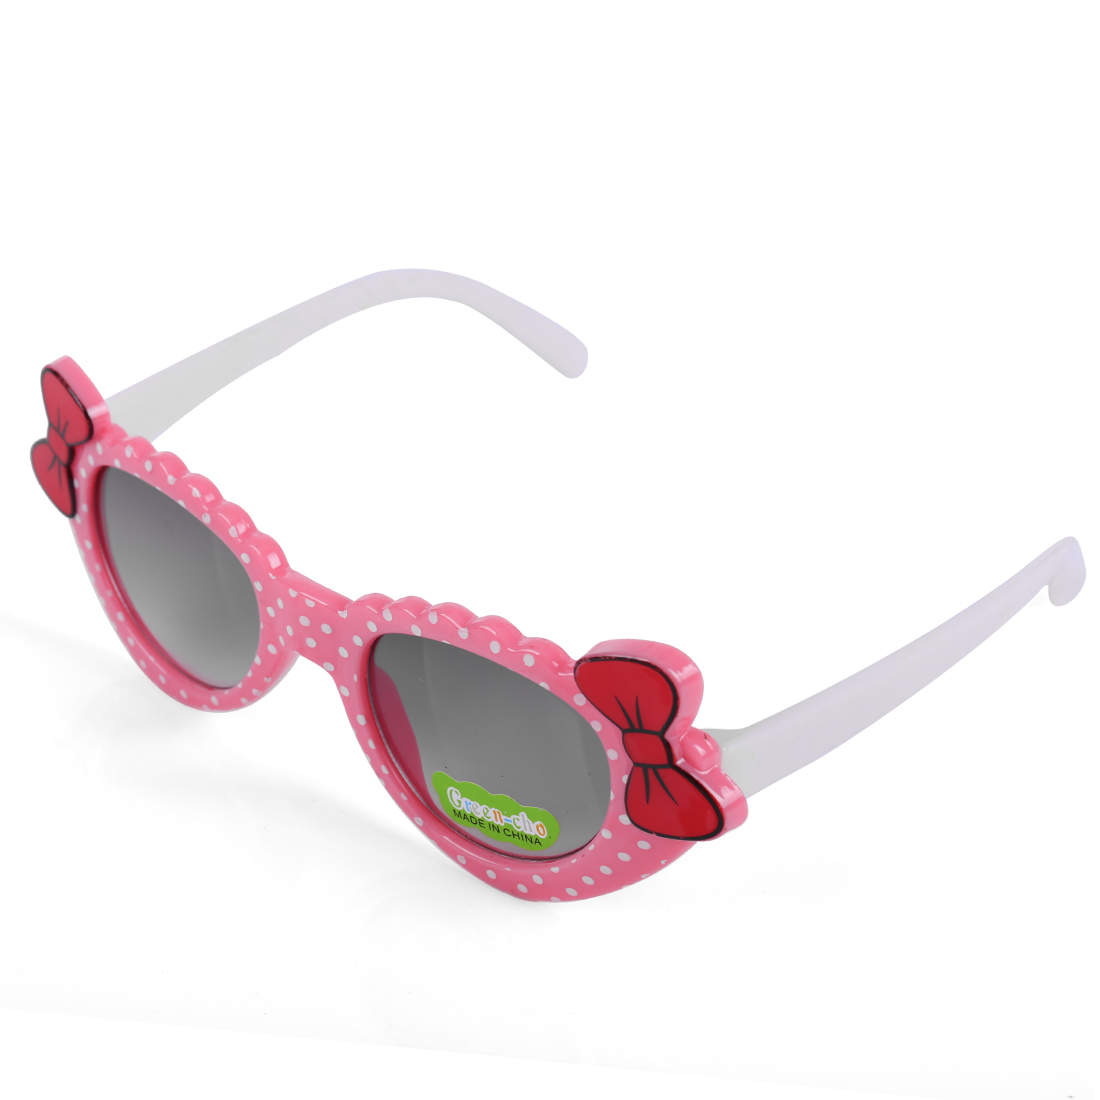 Girls Dots Prints Color Block Plastic Sunglasses Pink White